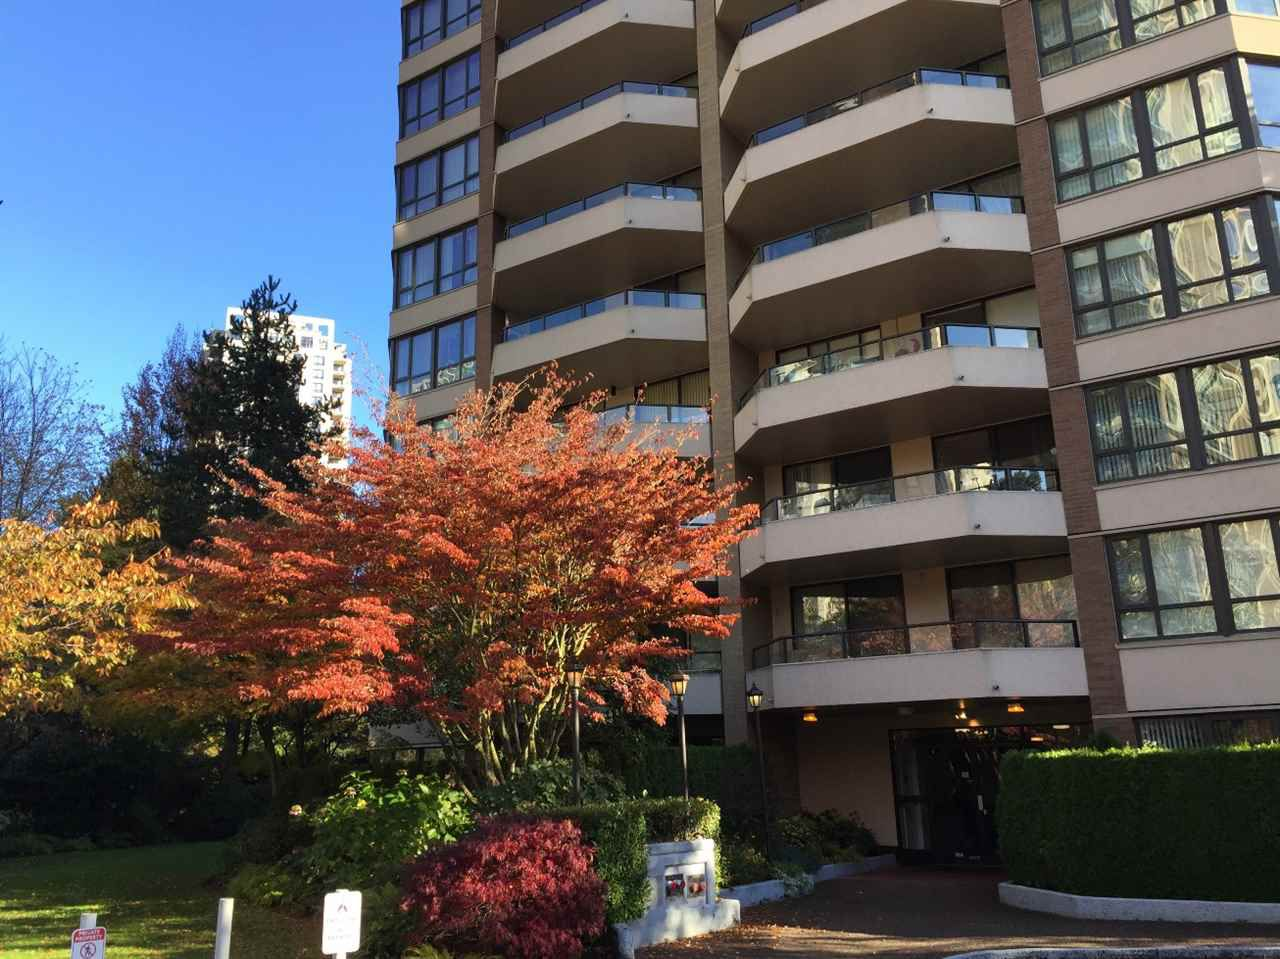 """Main Photo: 101 6152 KATHLEEN Avenue in Burnaby: Metrotown Condo for sale in """"EMBASSY"""" (Burnaby South)  : MLS®# R2221431"""